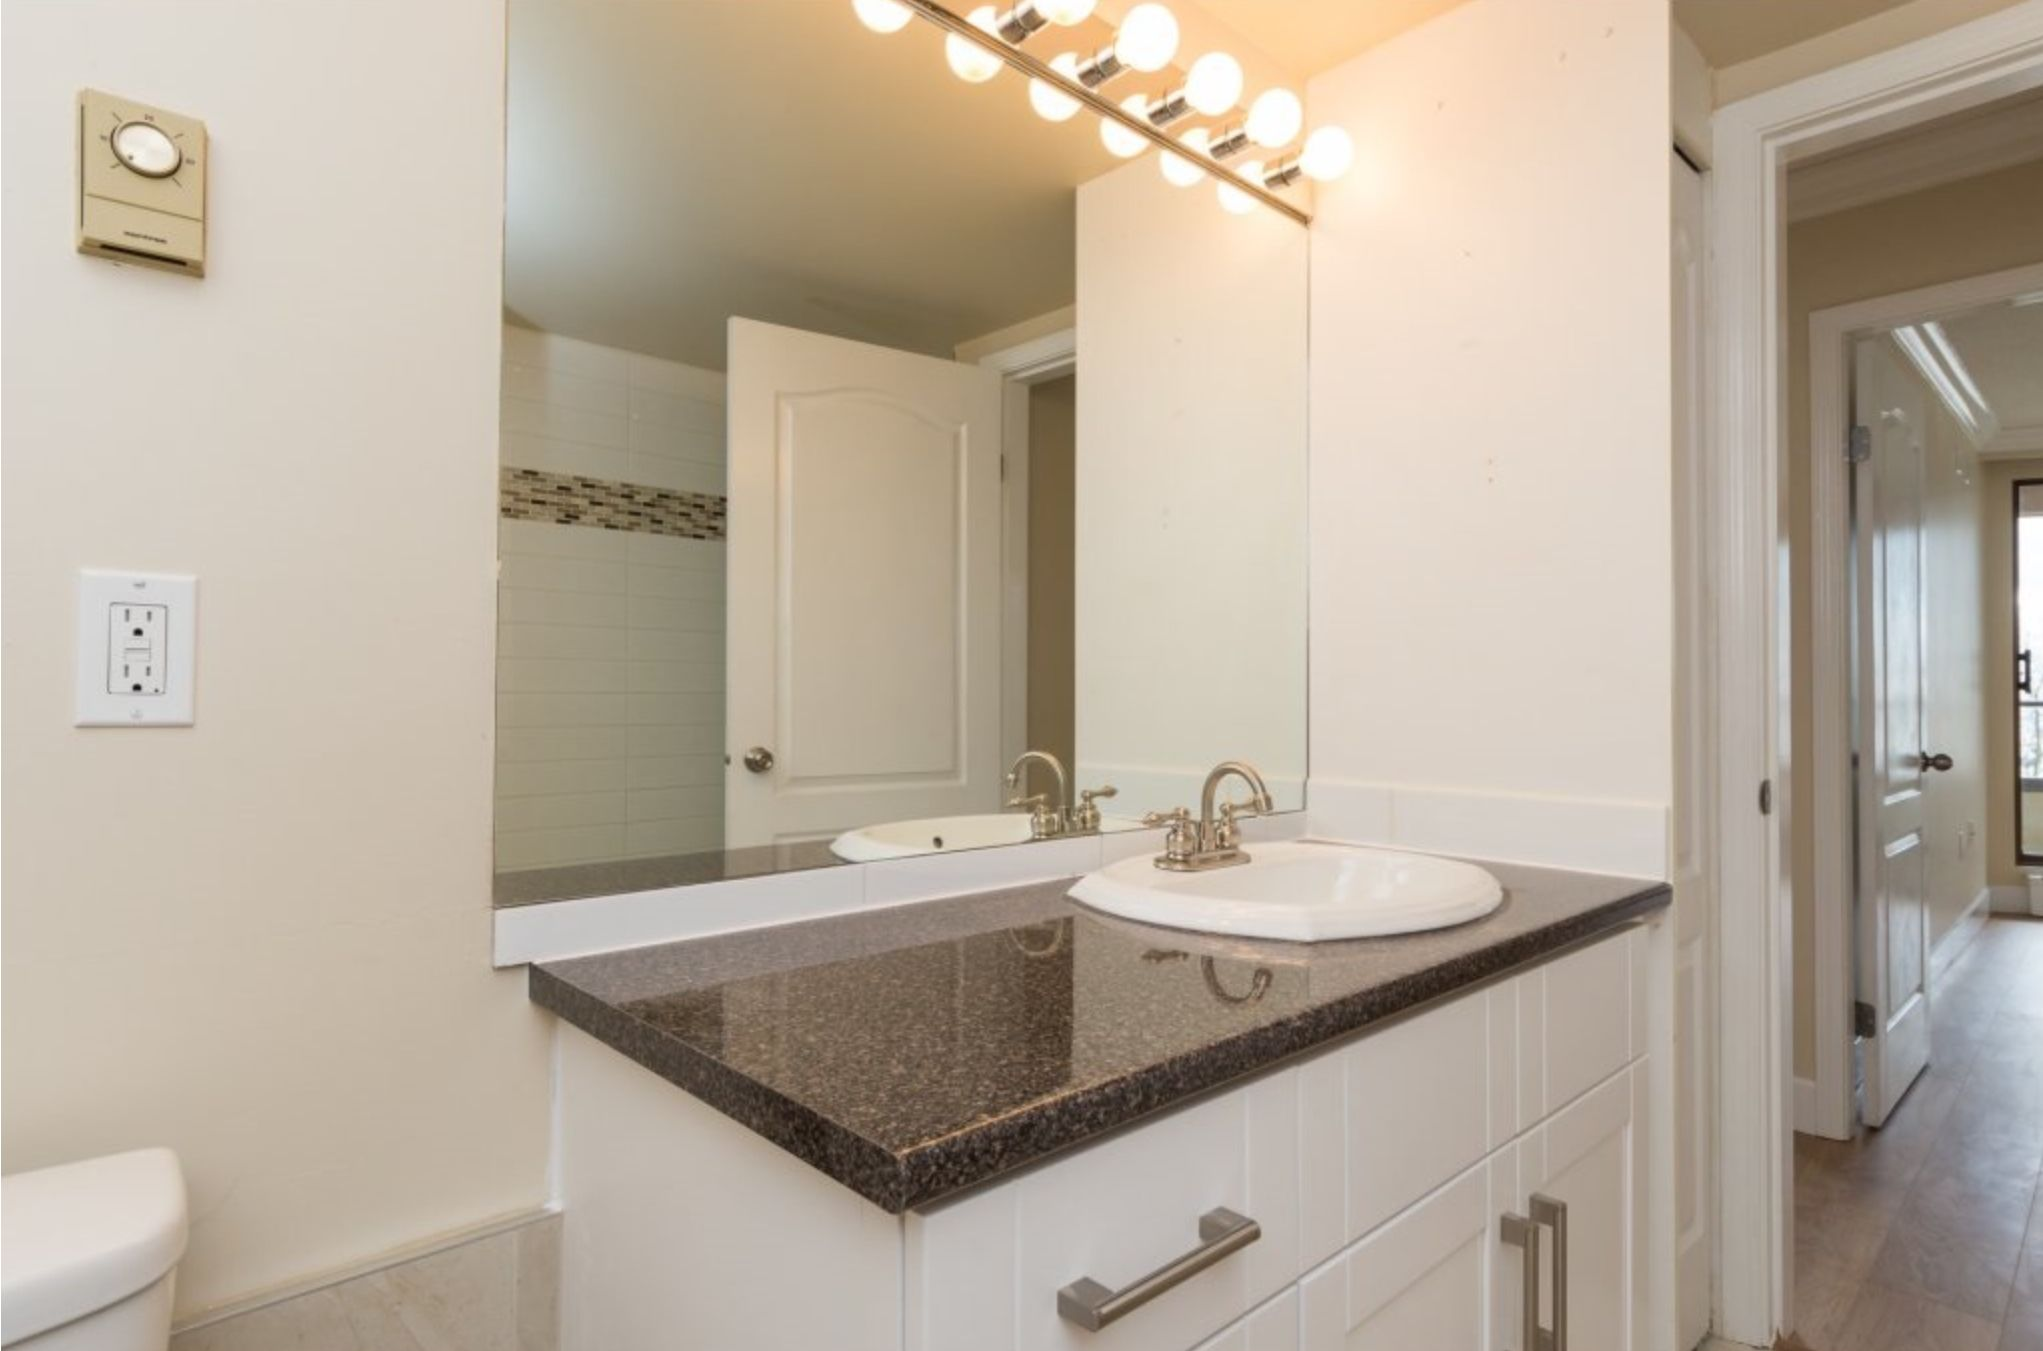 Photo 13: Photos: 410, 15111 Russell Avenue: White Rock Condo for sale (South Surrey White Rock)  : MLS®# R2152299